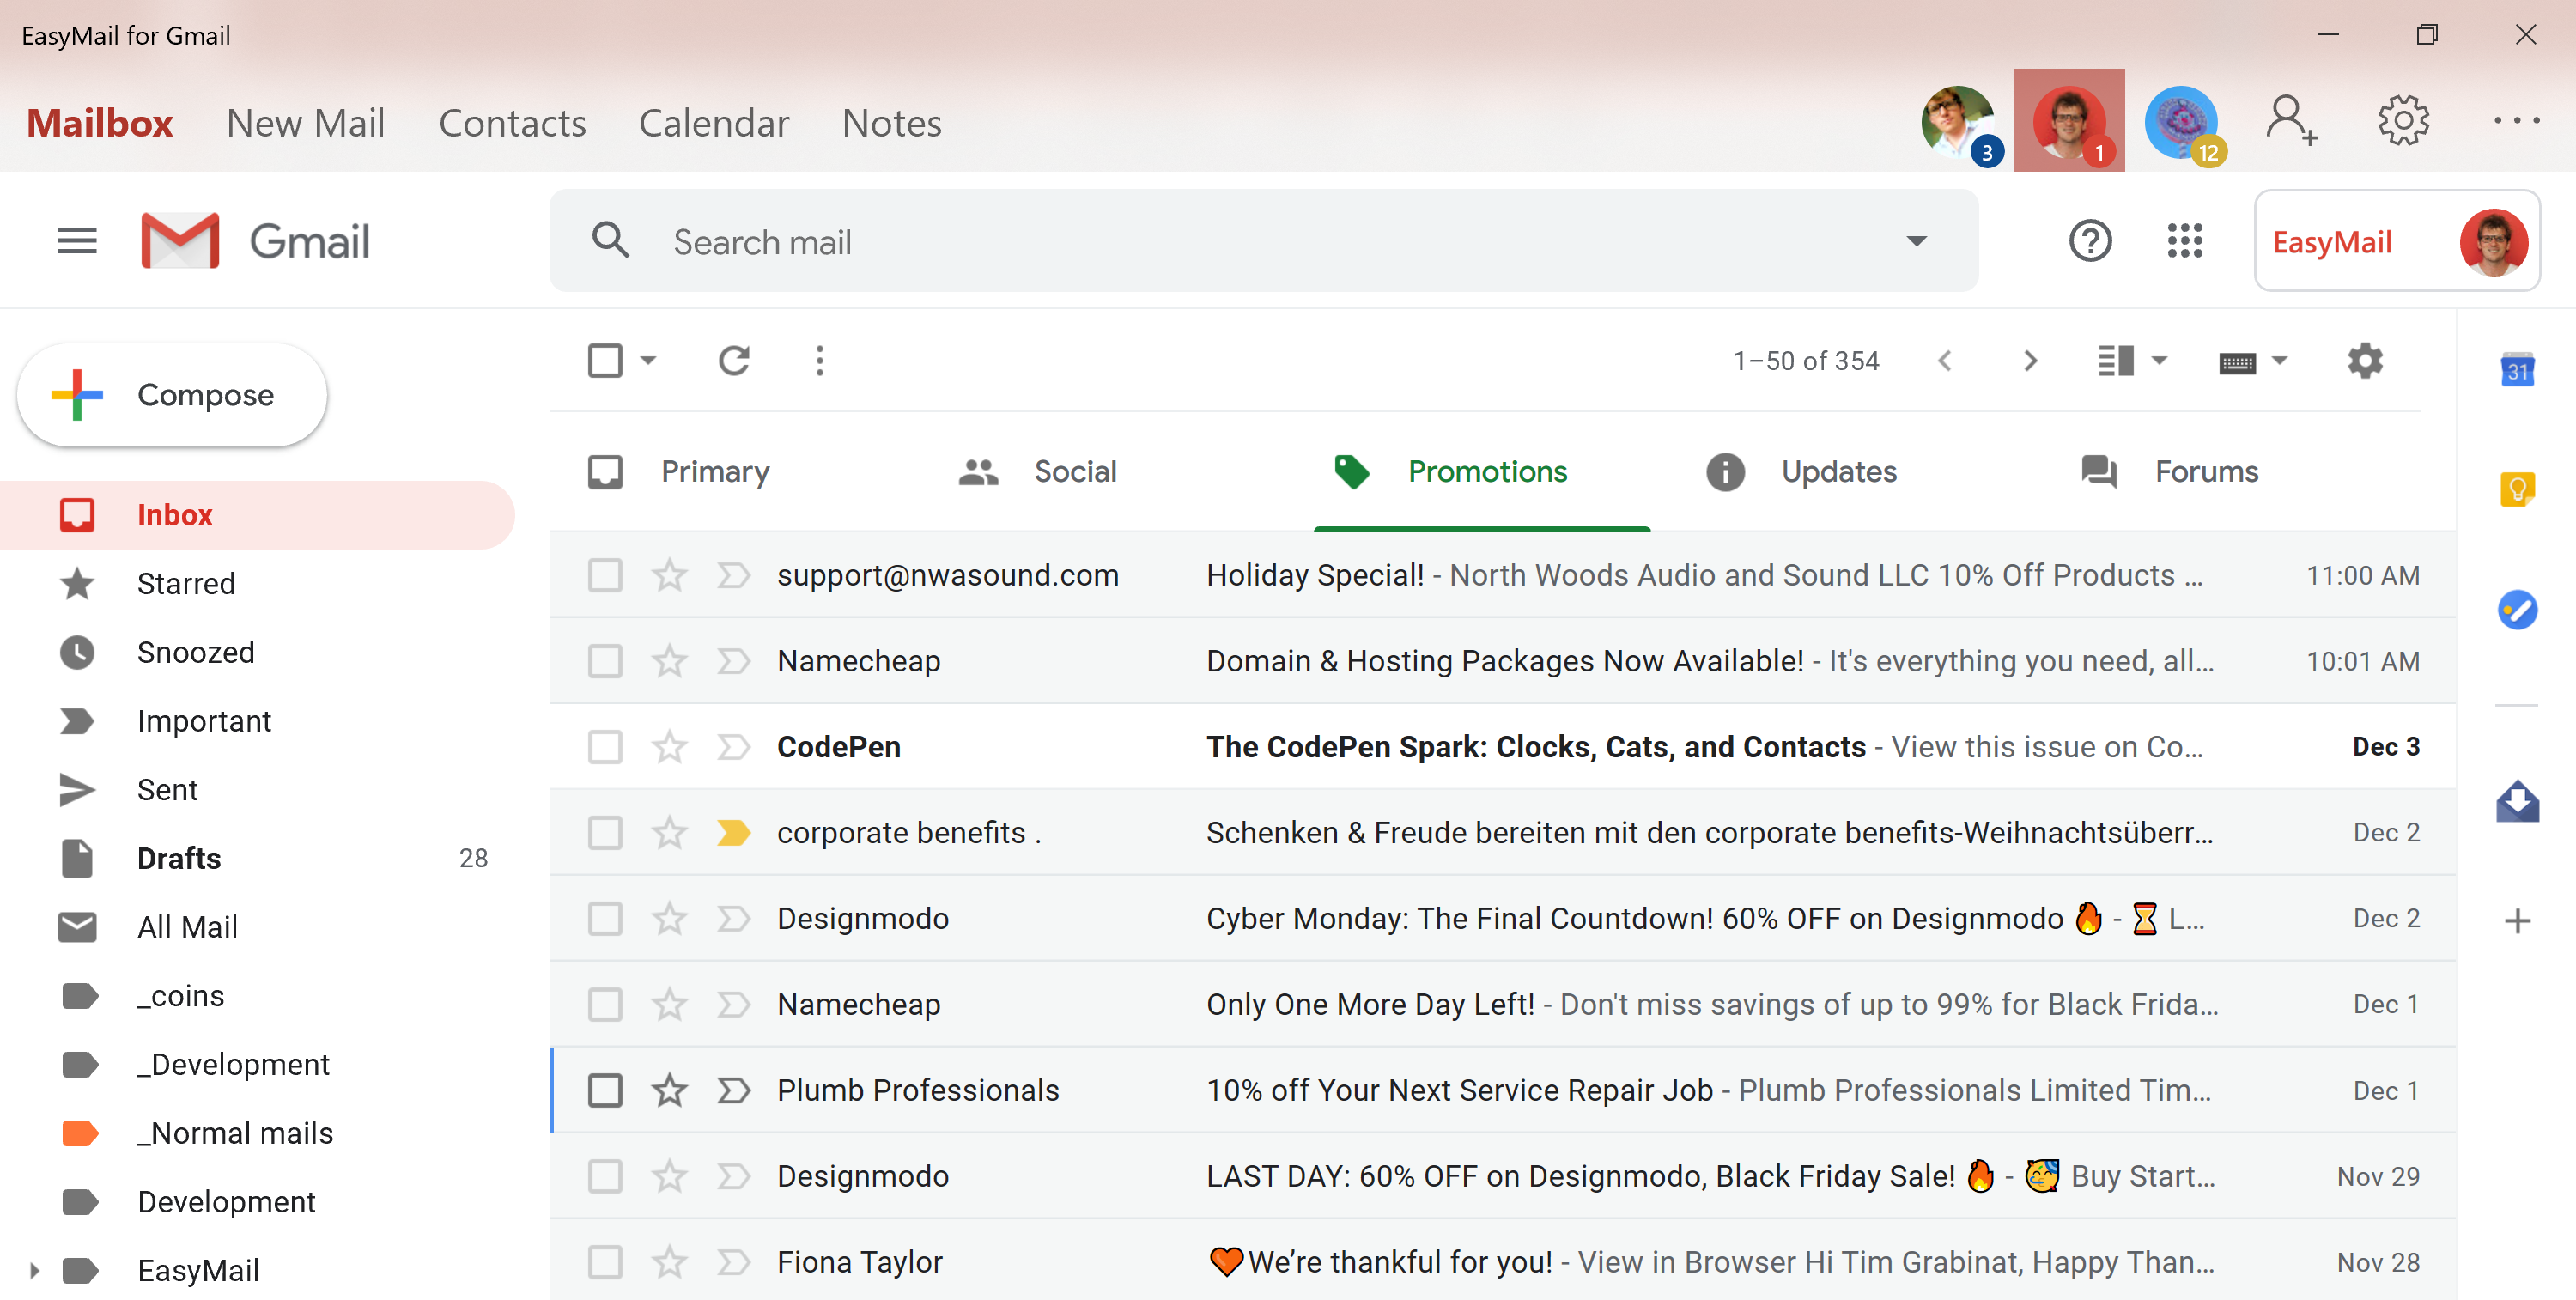 EasyMail for Gmail 3.1.6.0 full